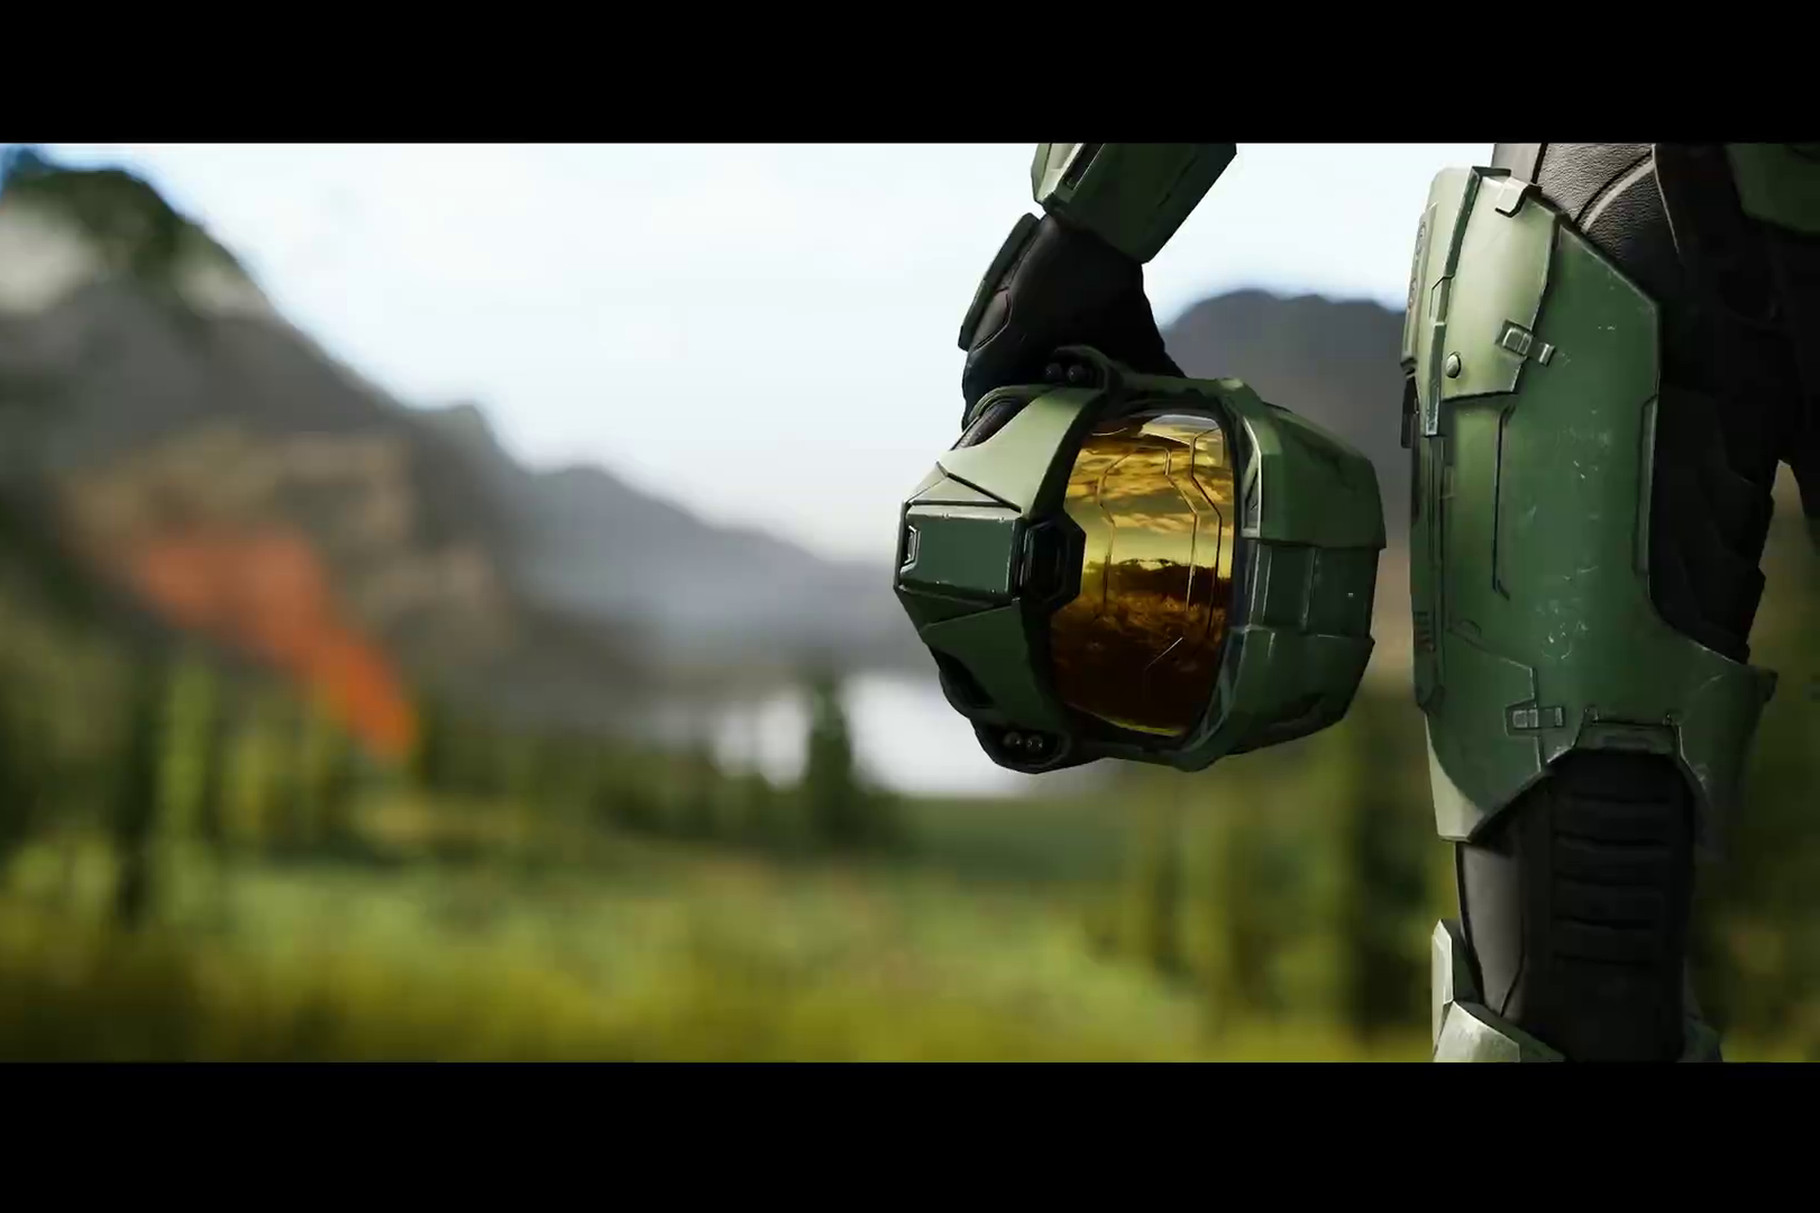 Halo, Madden franchises coming back to PC after a decade ...